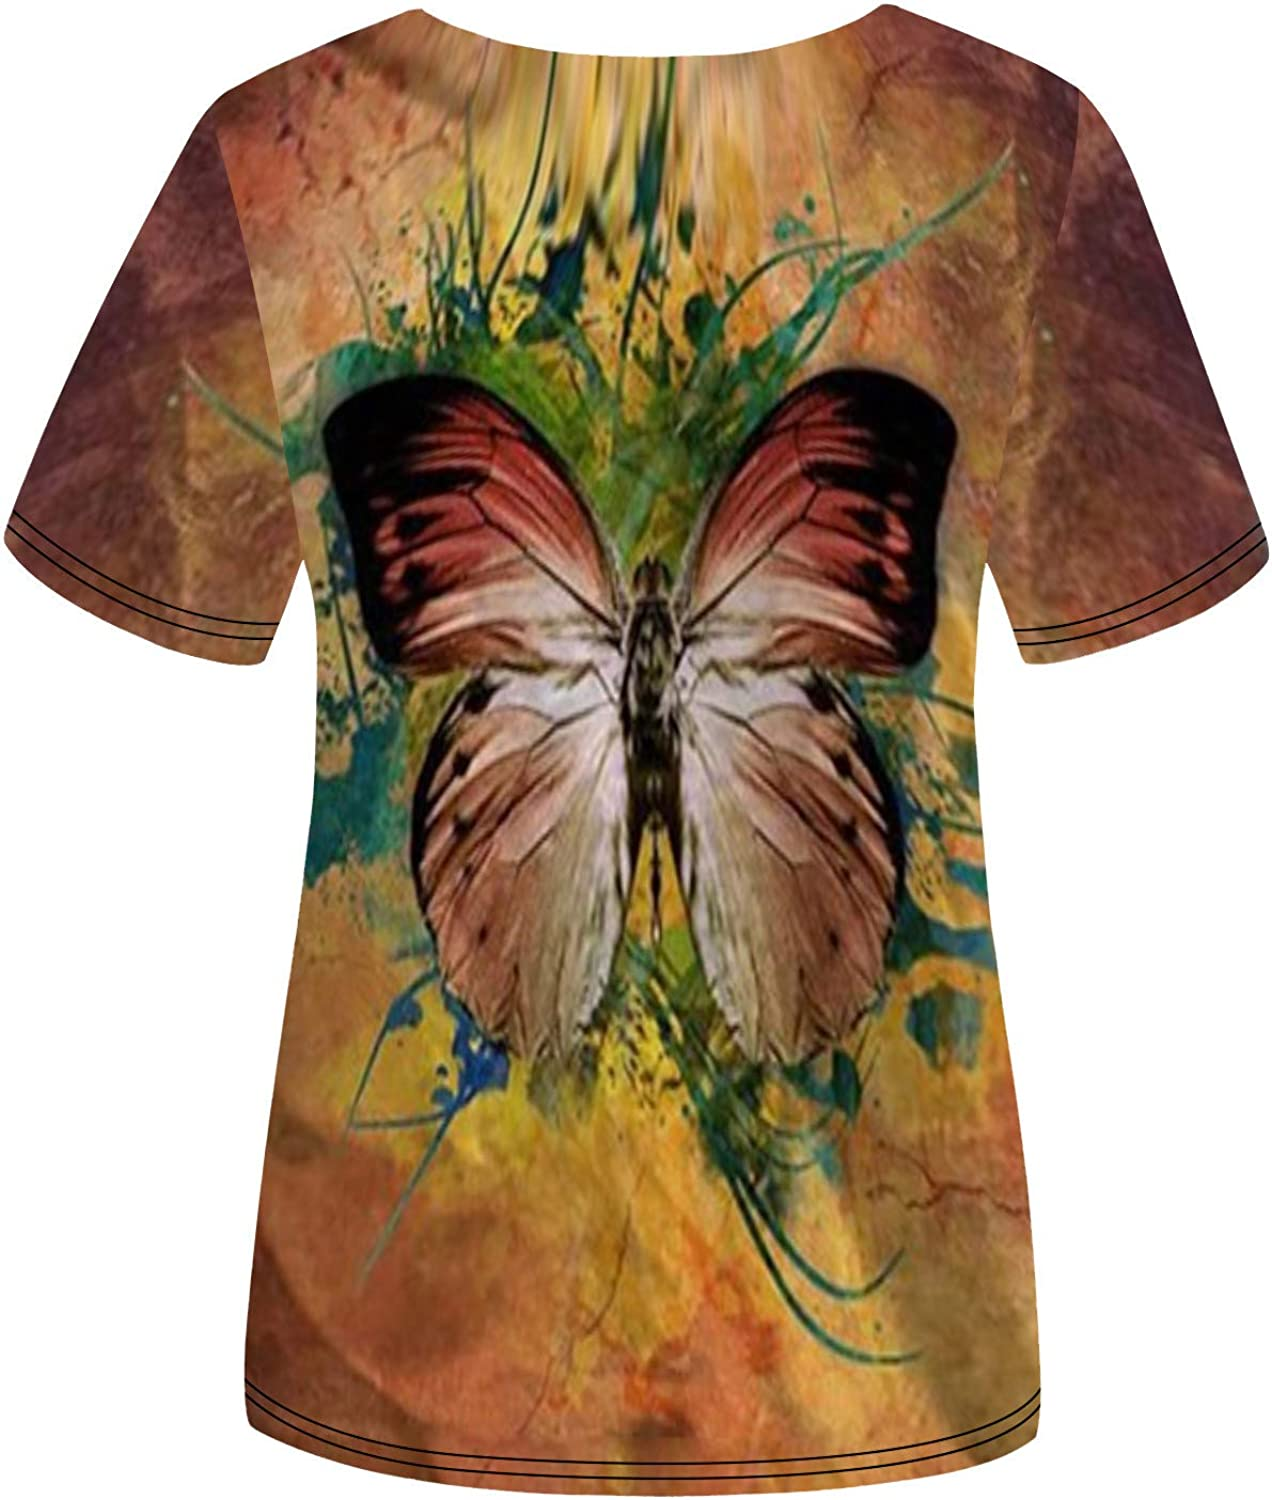 Women's Stylish Short Sleeve Blouses Beautiful Butterfly Print V Neck Tees Casual Loose Comfy Tshirts Summer Tops